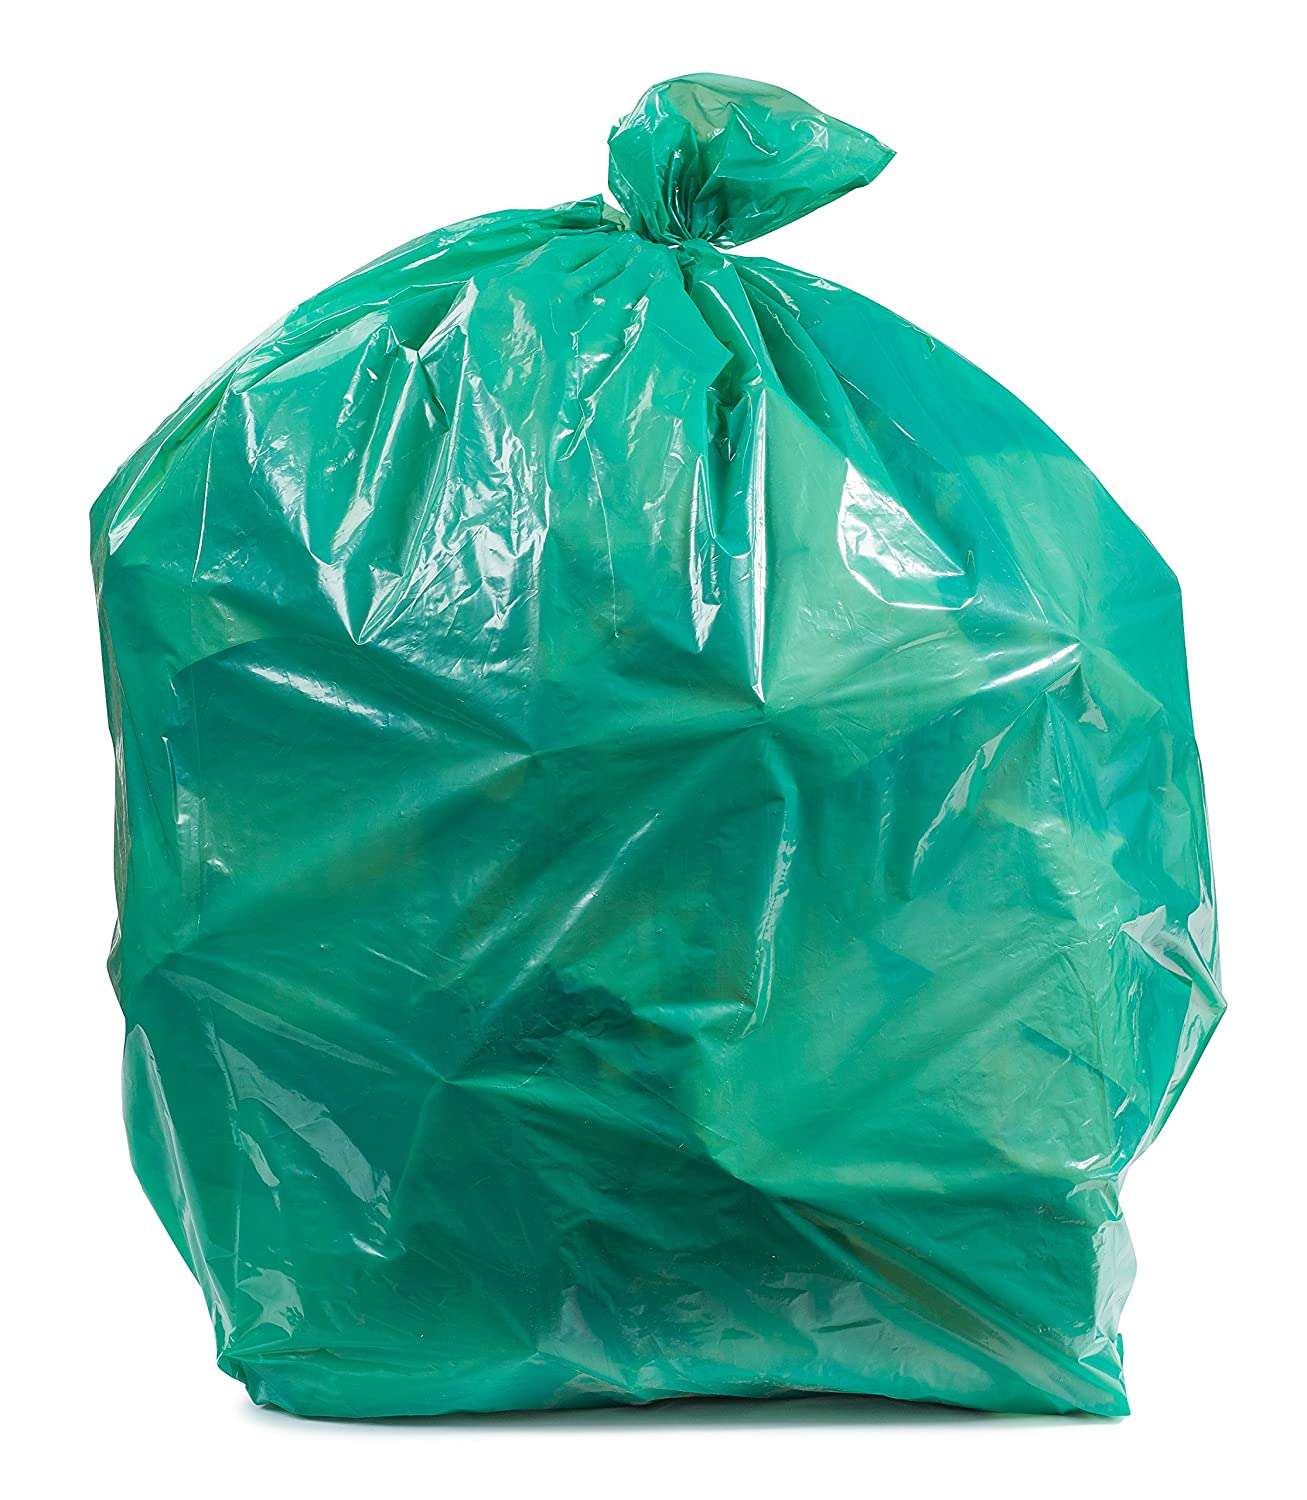 Amazon.com: Plasticplace Green Trash Bags, 12-16 Gallon 250 / Case ...